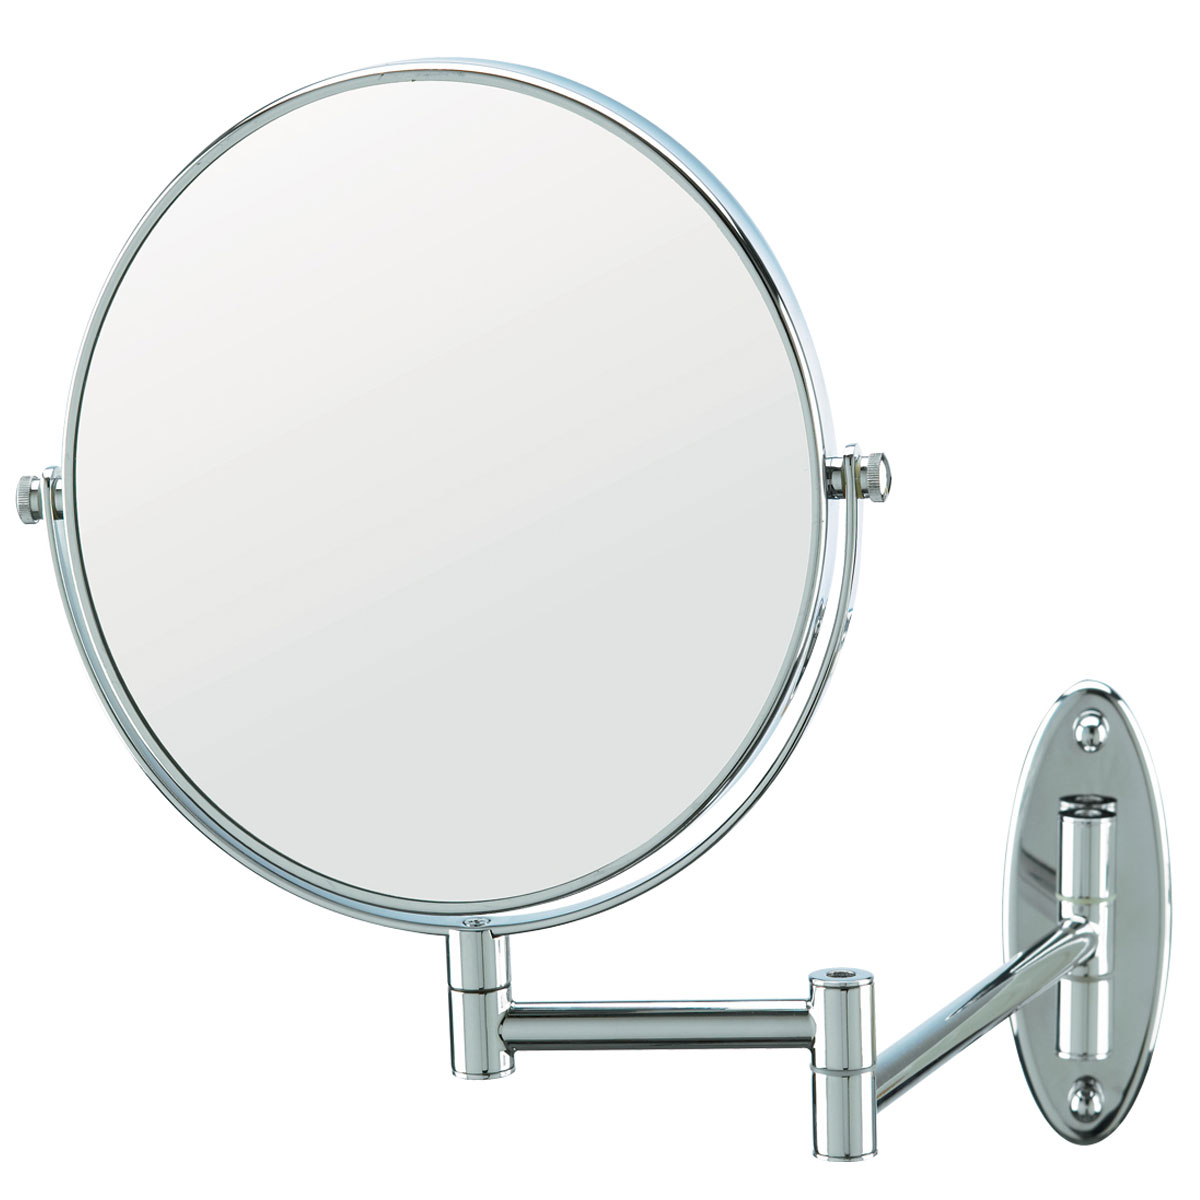 Conair 174 41741w 8 Quot Wall Mount Mirror 1x 5x Magnification